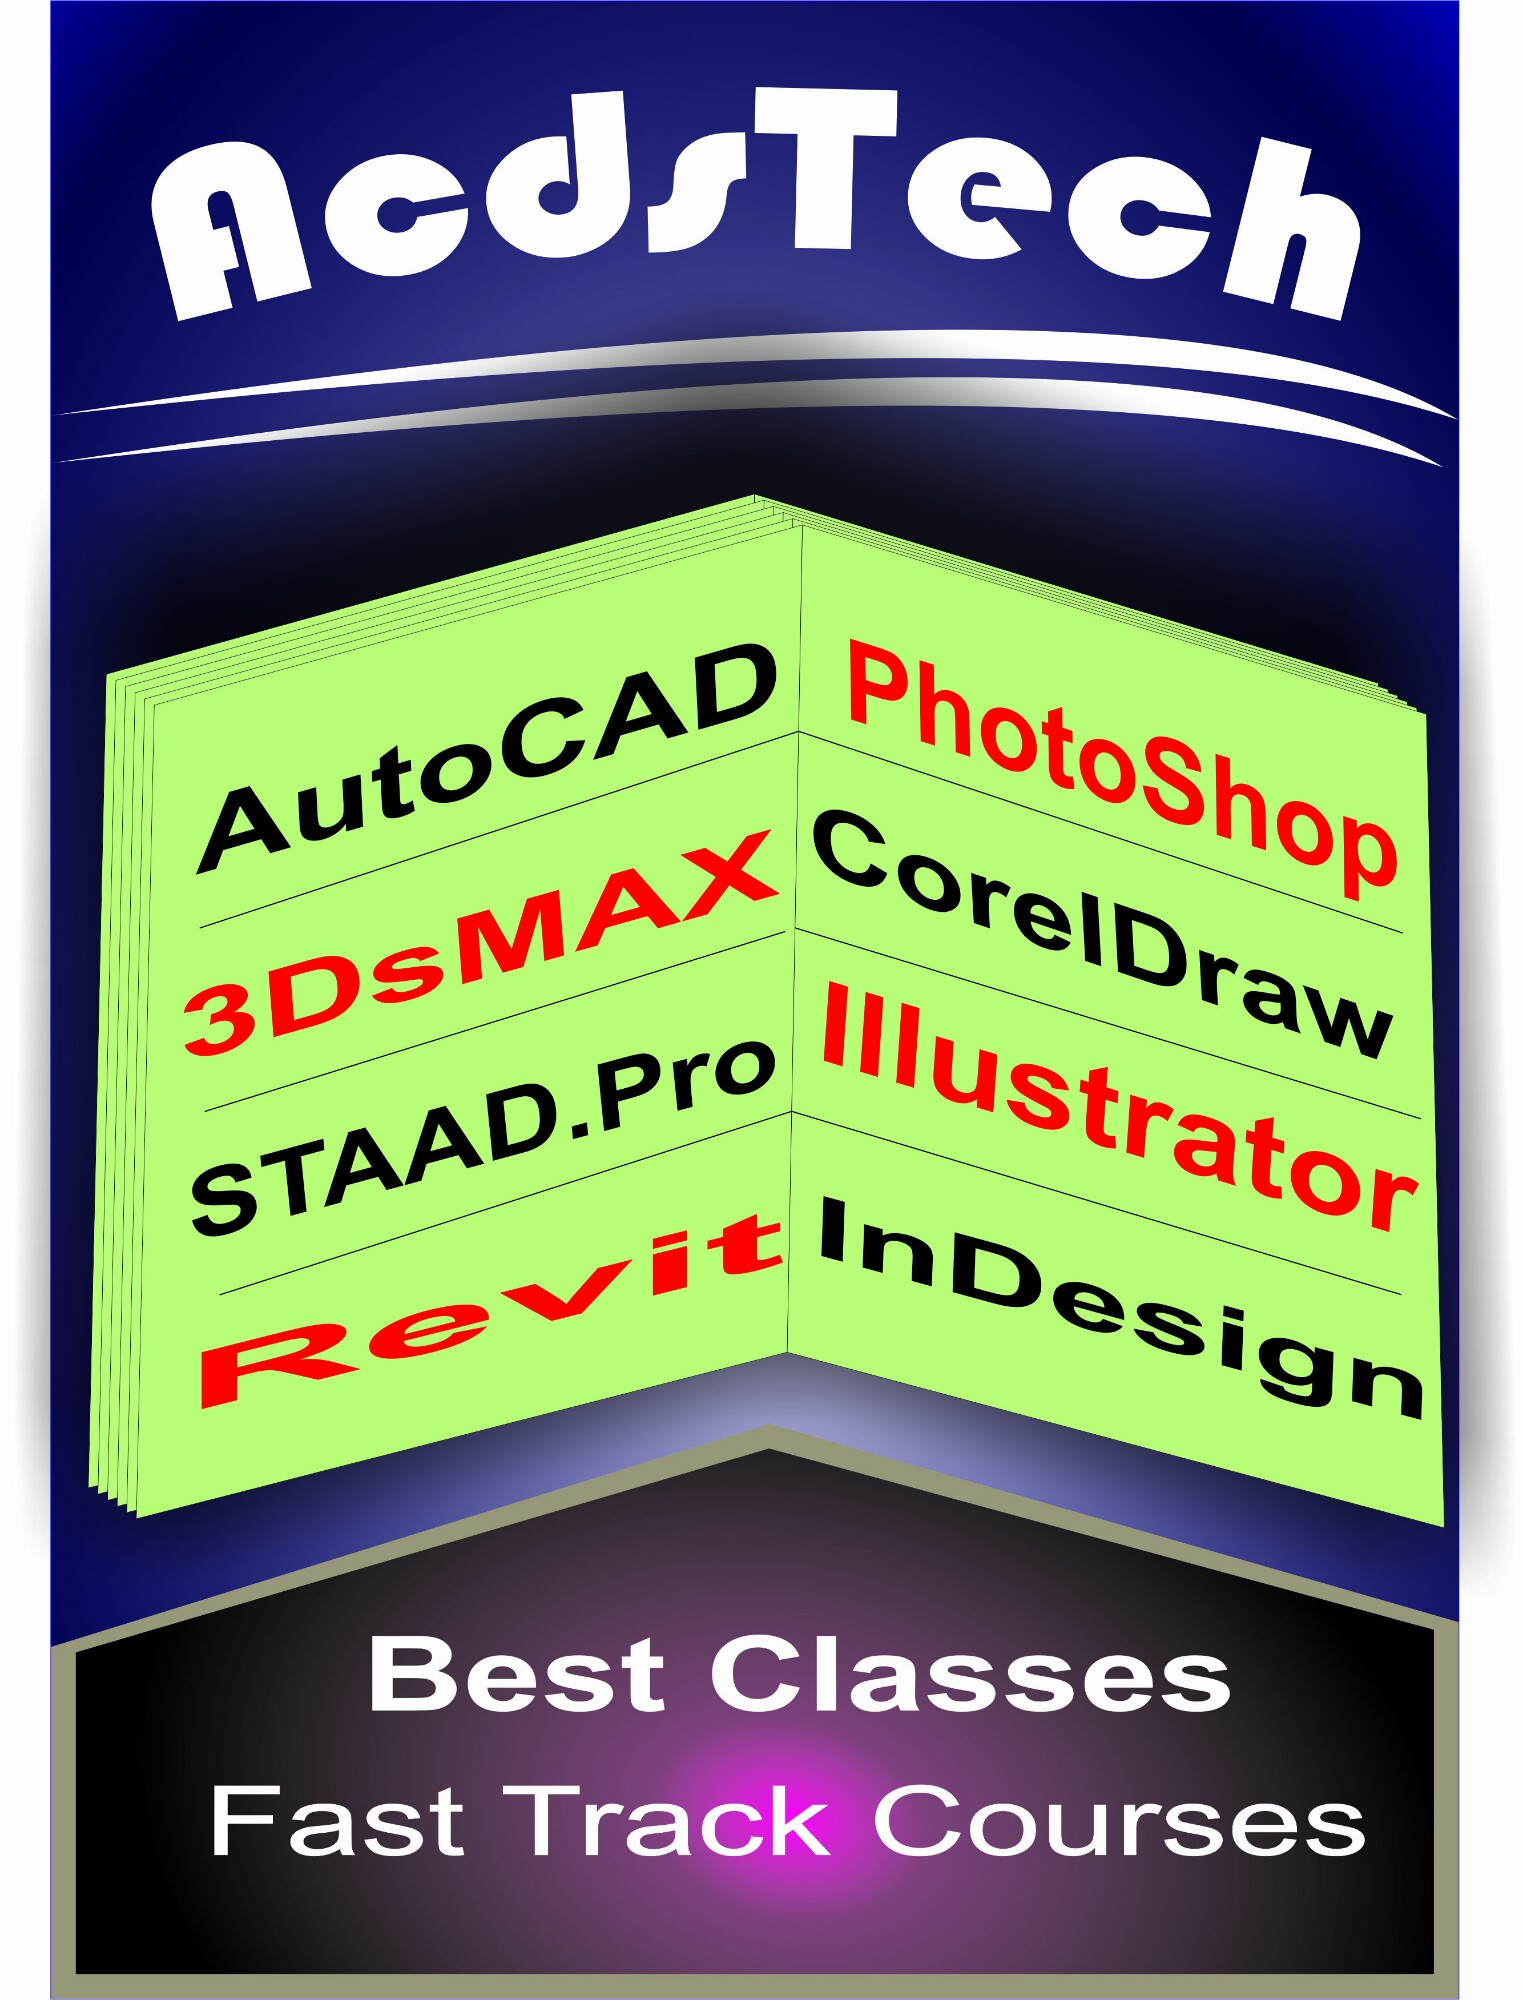 Electrical CAD Training in Bhopal, Classes, Courses